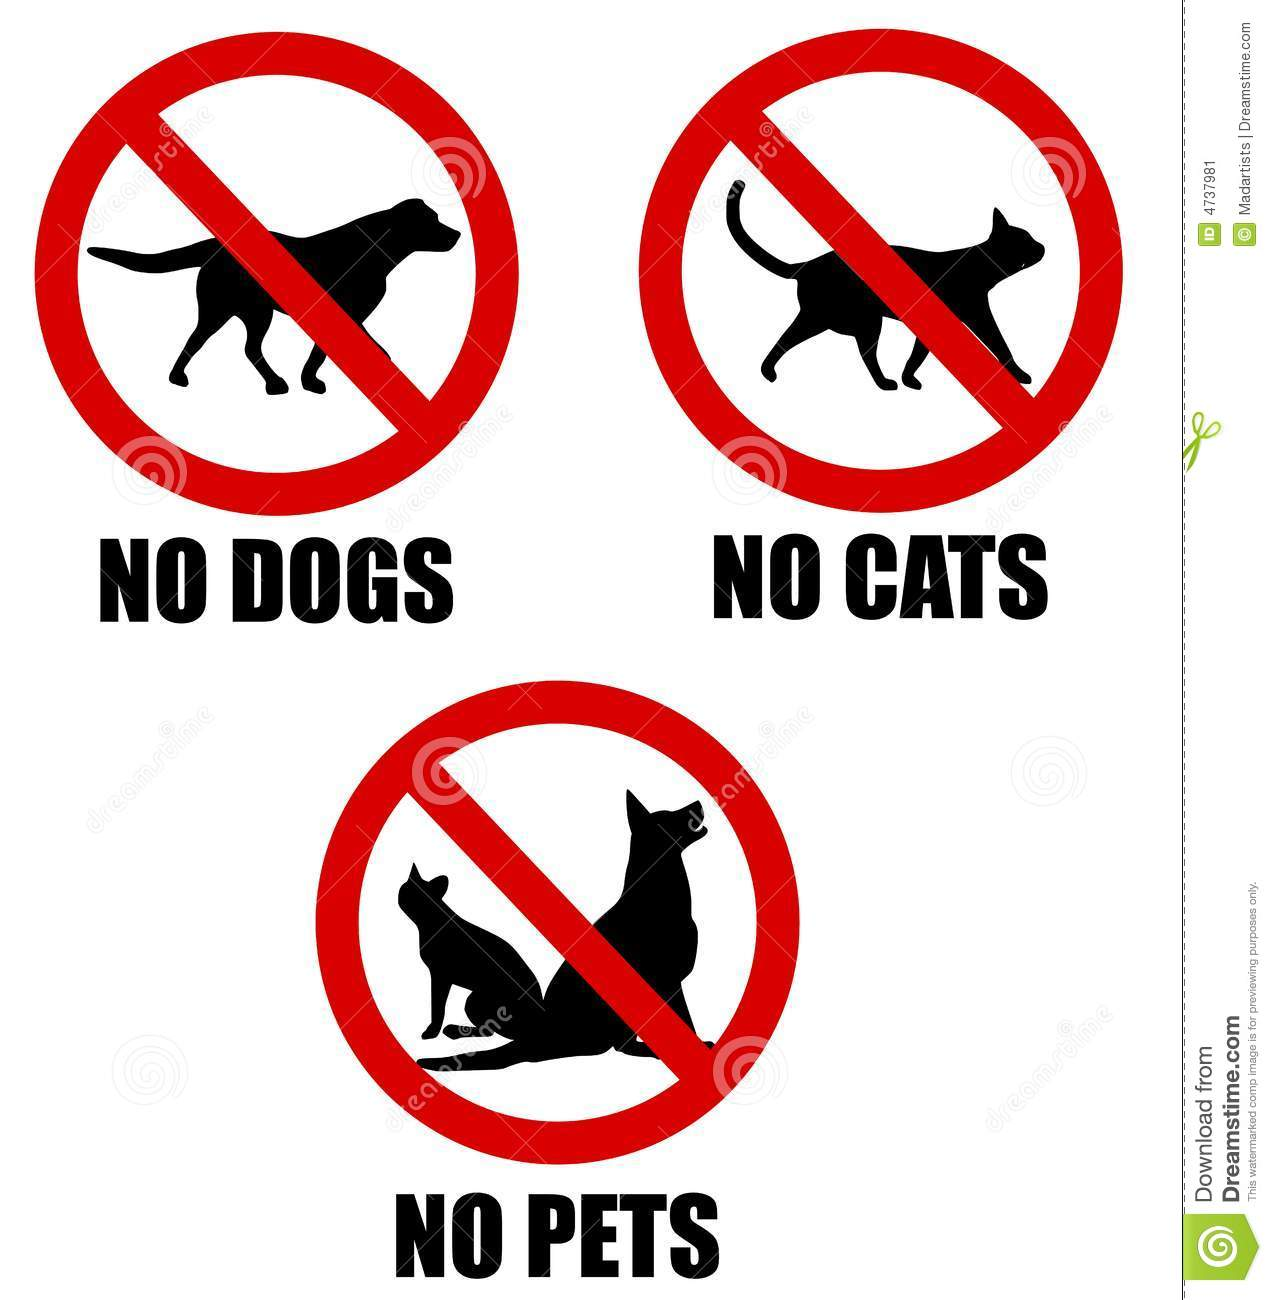 An illustration featuring 3 red banned symbols involving pets - one ...